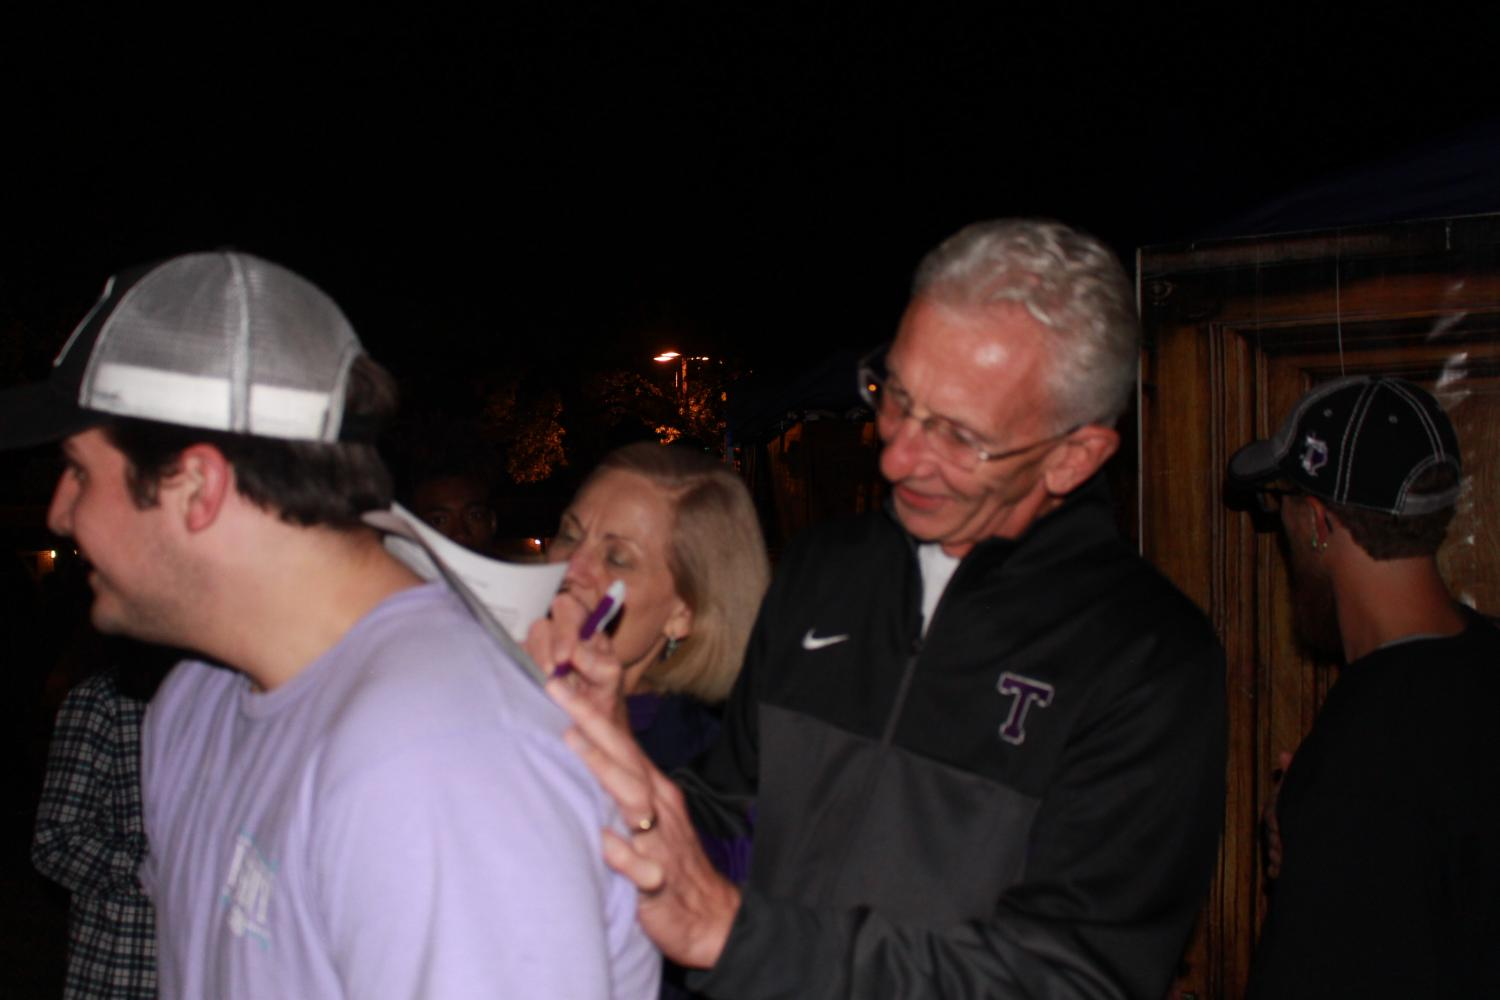 Dr. Dottavio and his wife sign waivers to enter the haunted house.